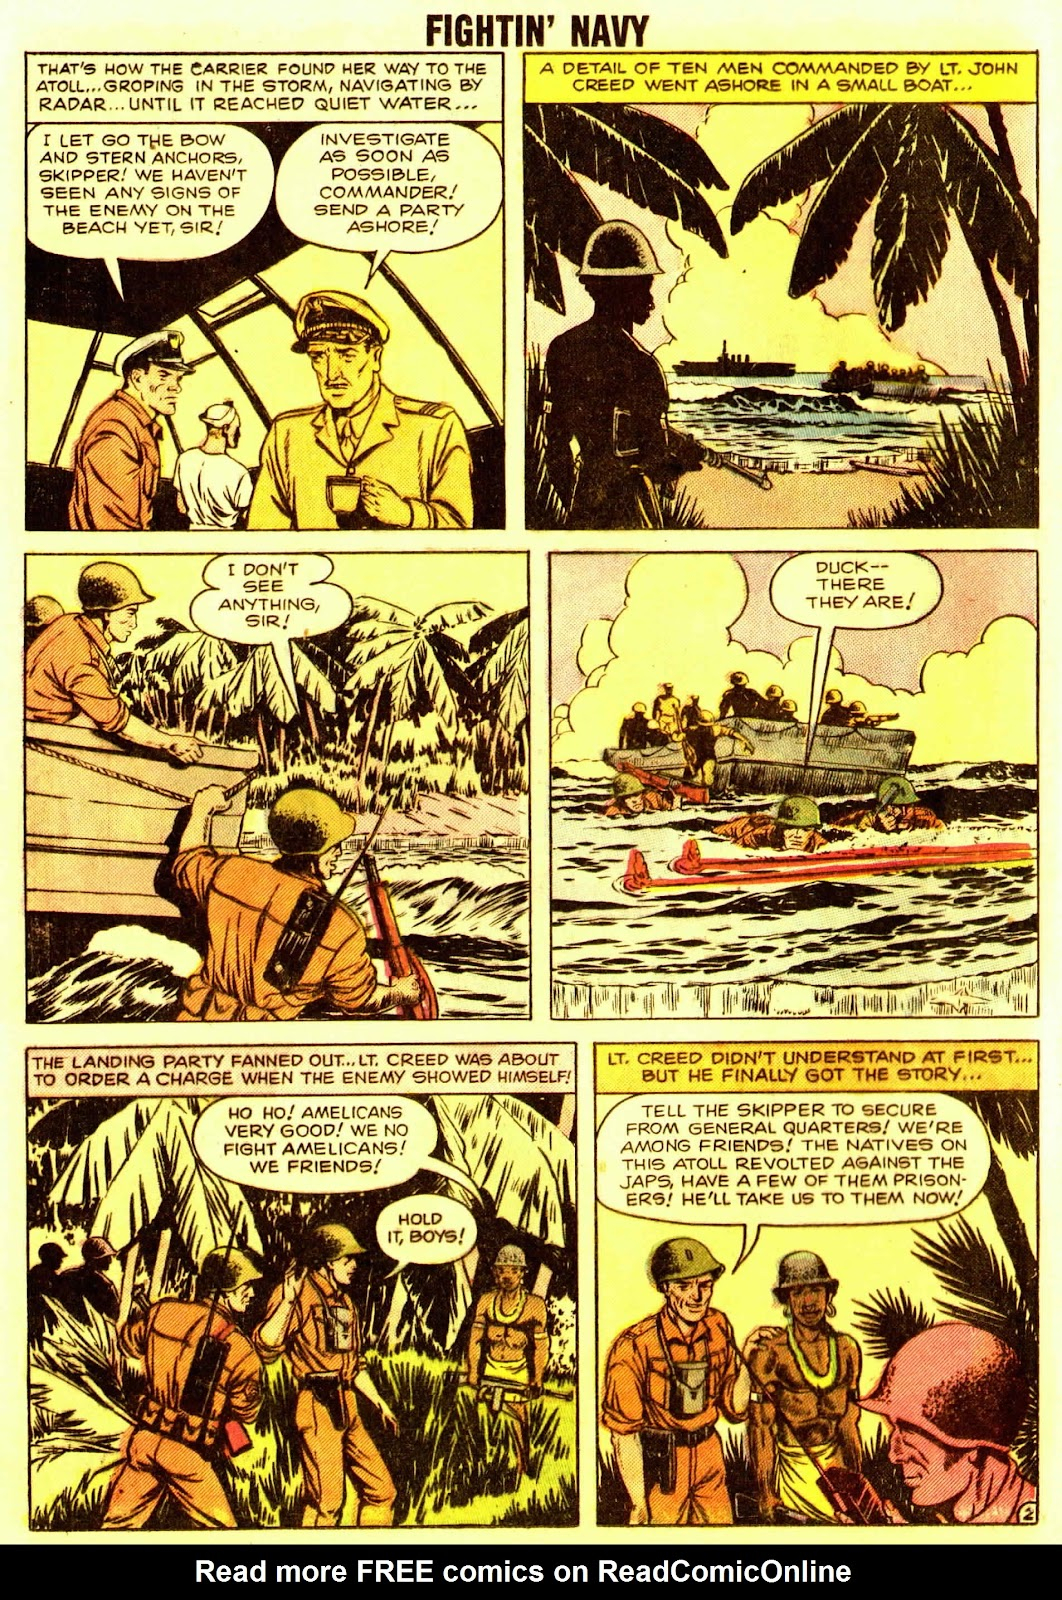 Read online Fightin' Navy comic -  Issue #83 - 84